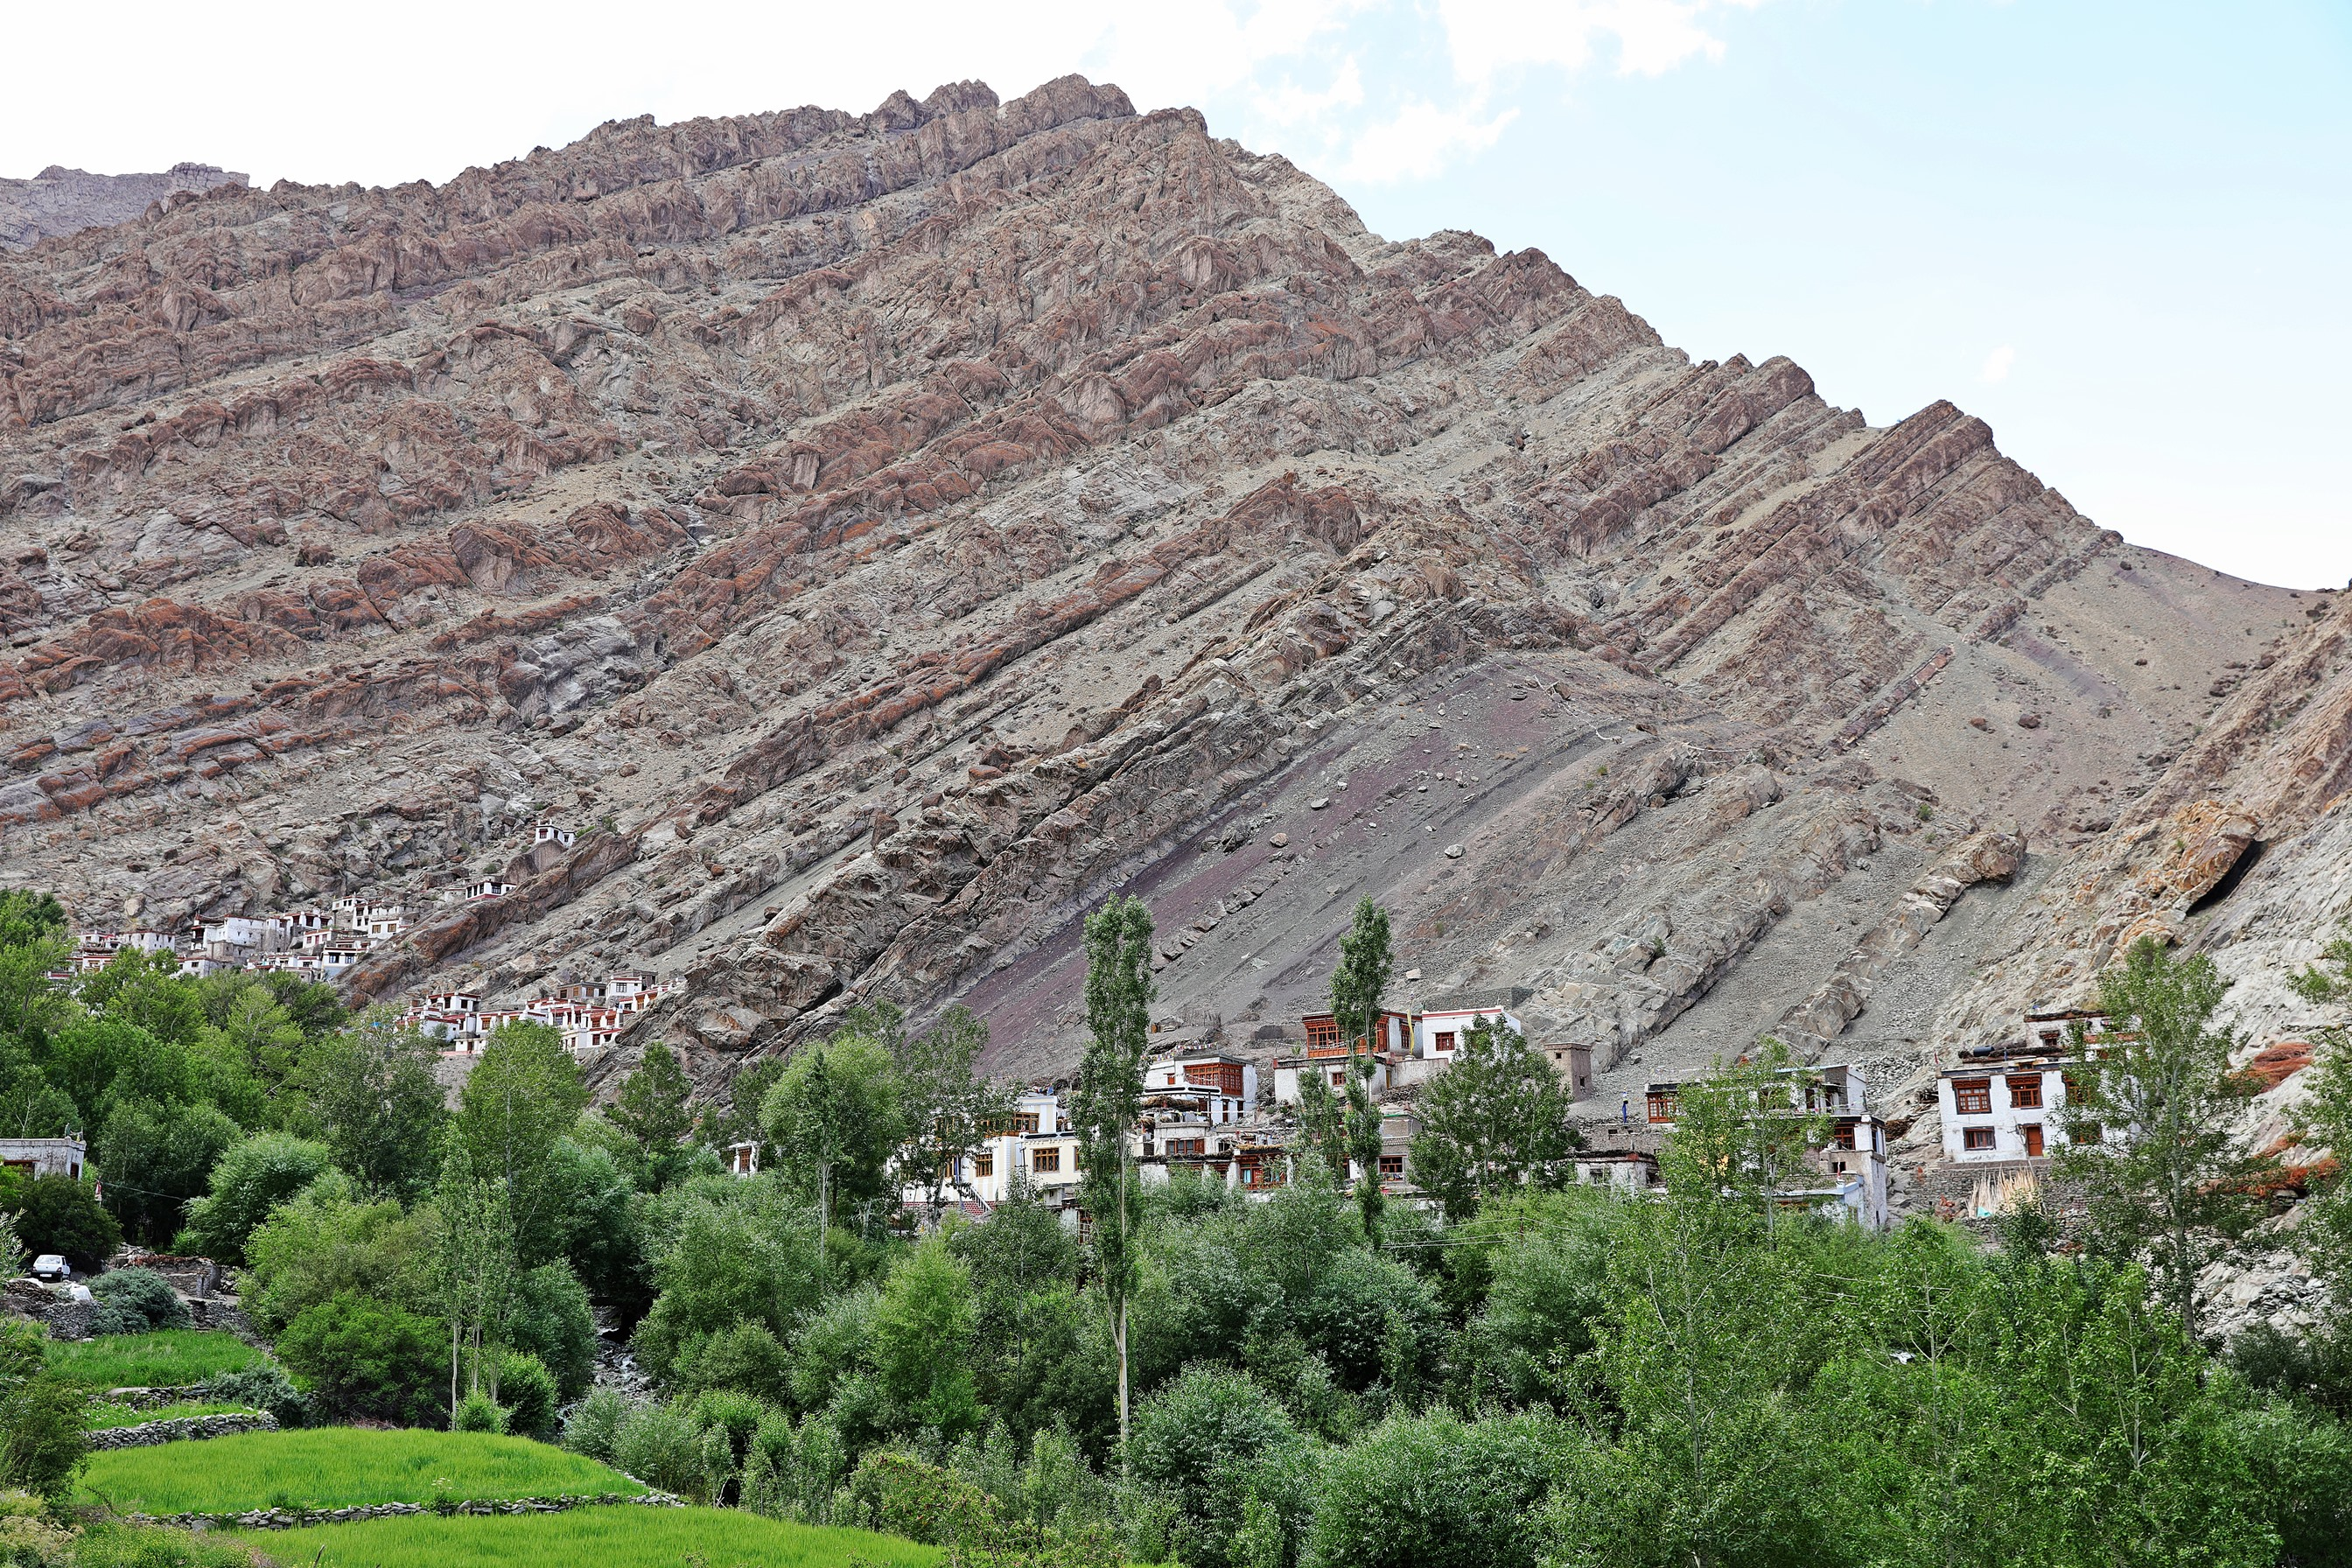 Steep hill with Hemis Gompa on the left, village on the right